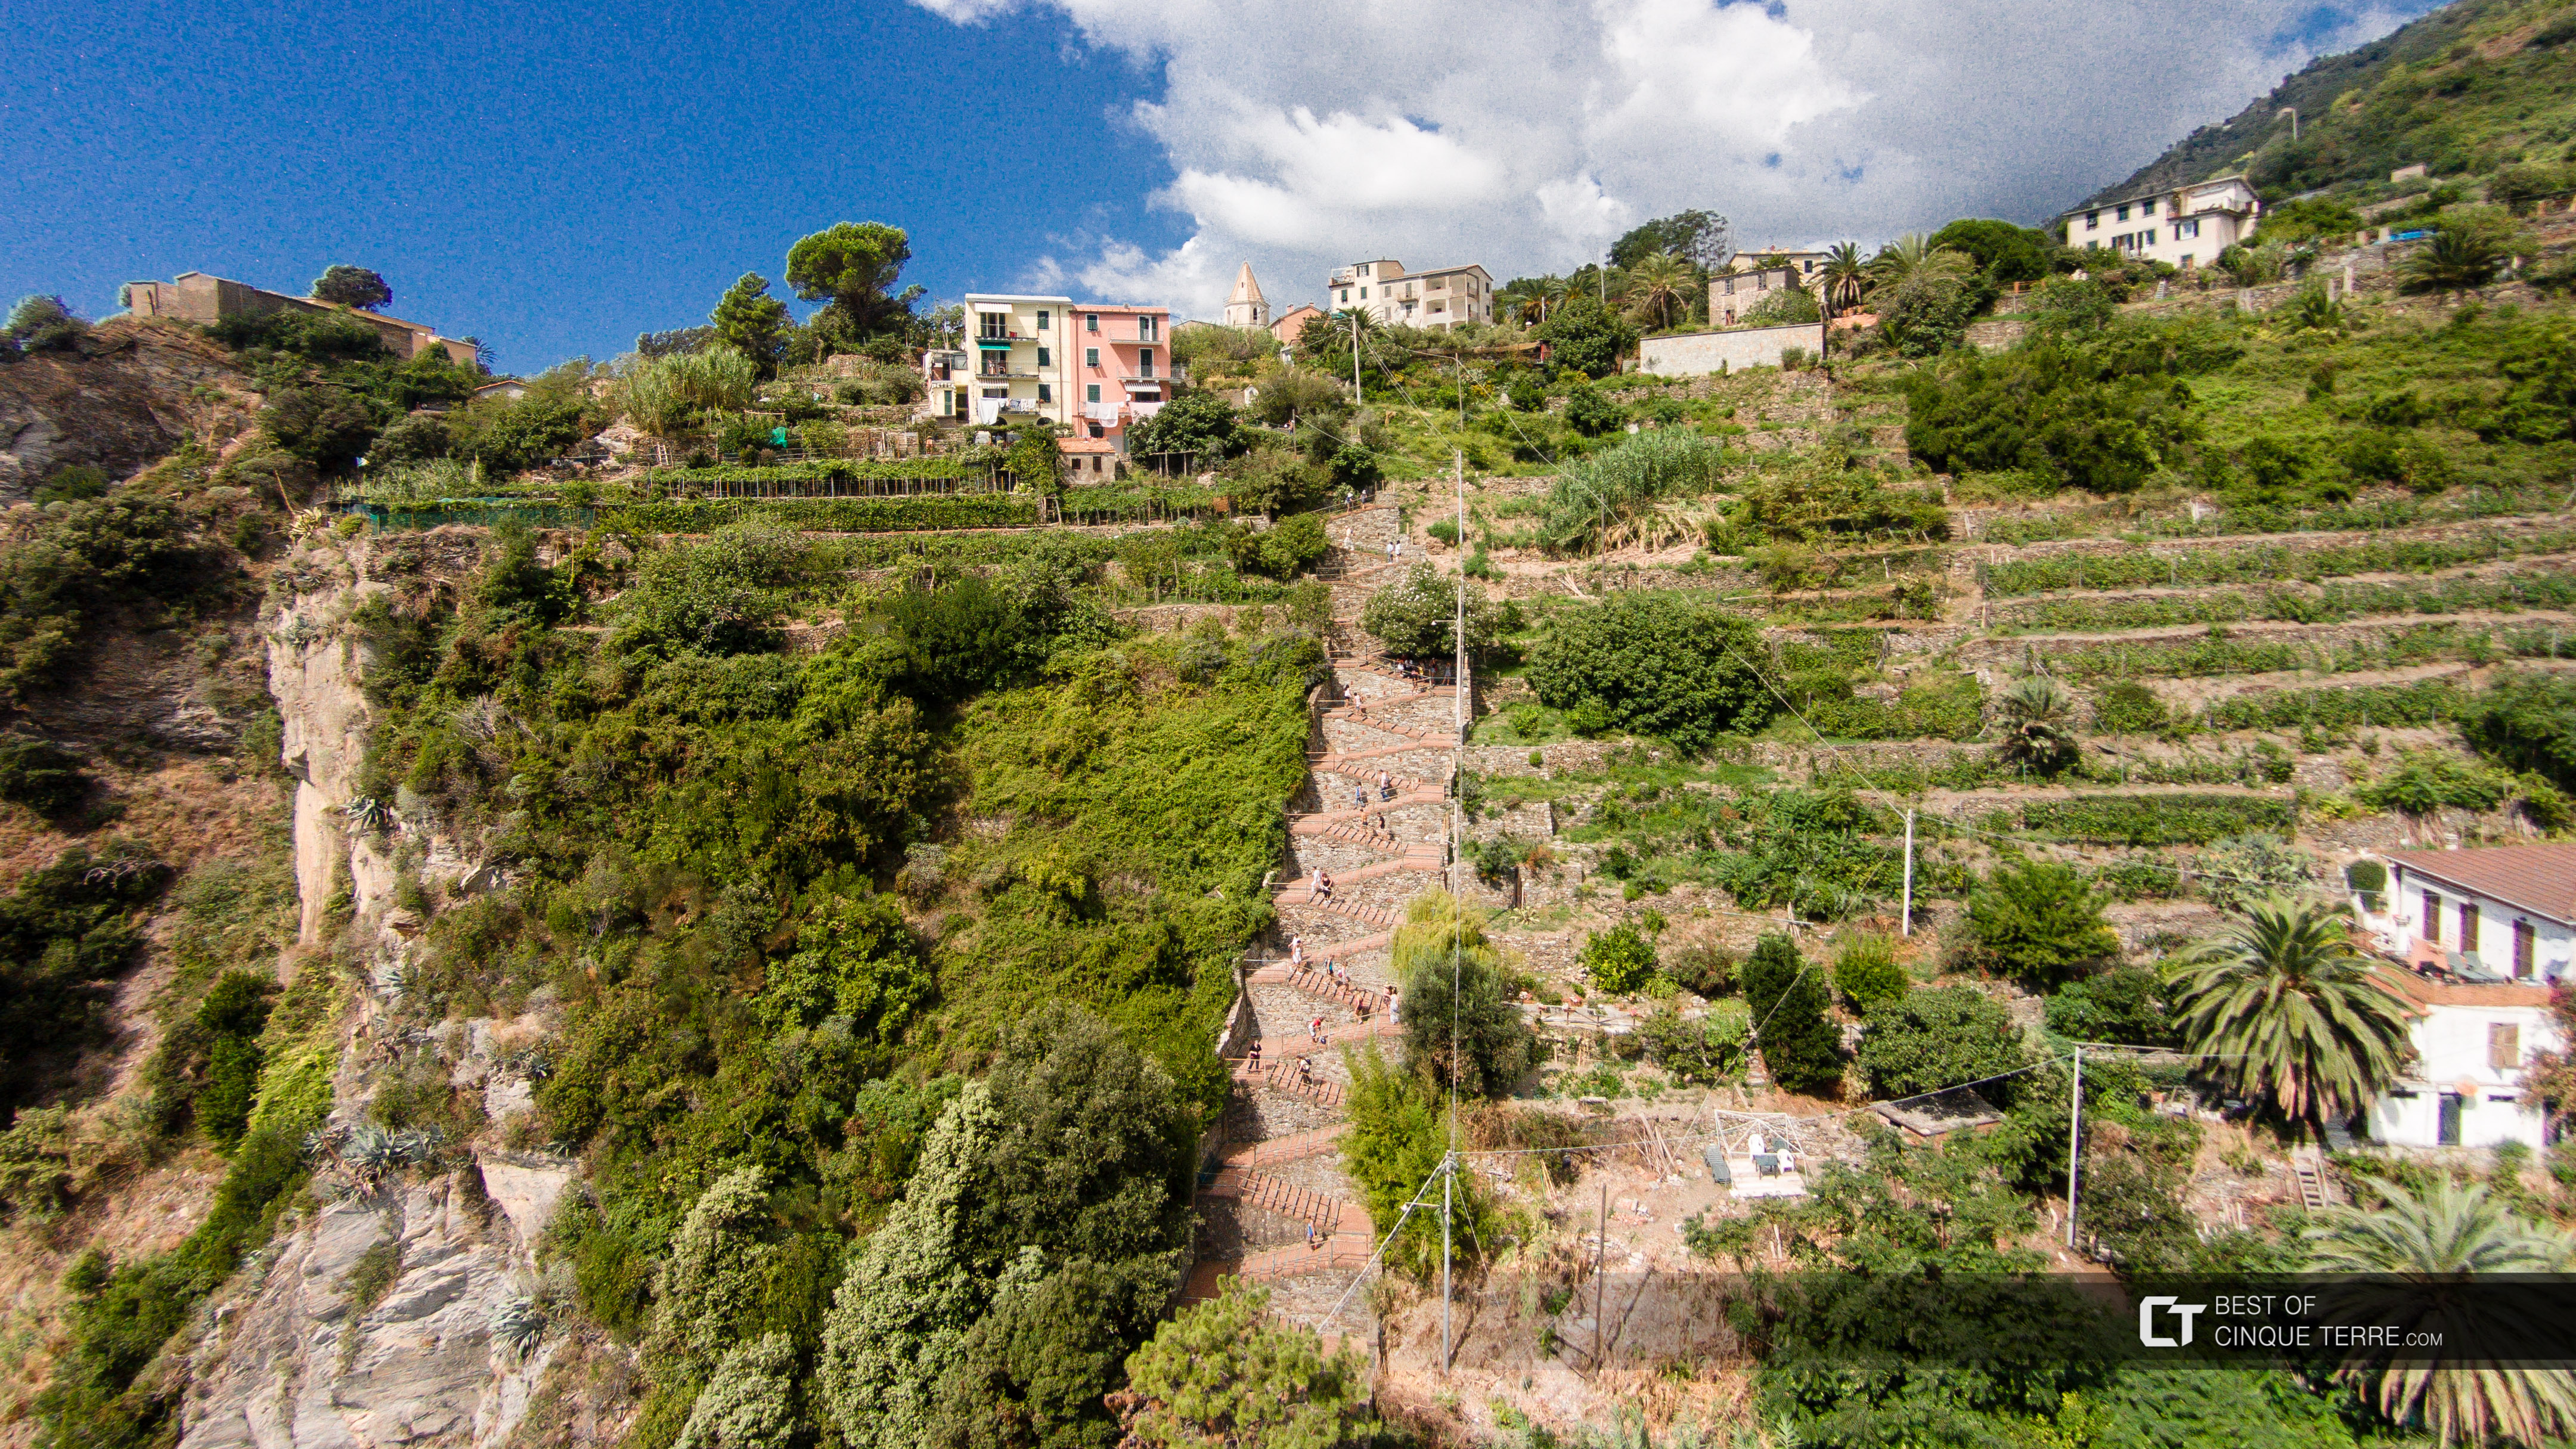 Aerial view of the steps from the station to the village, Corniglia, Cinque Terre, Italy